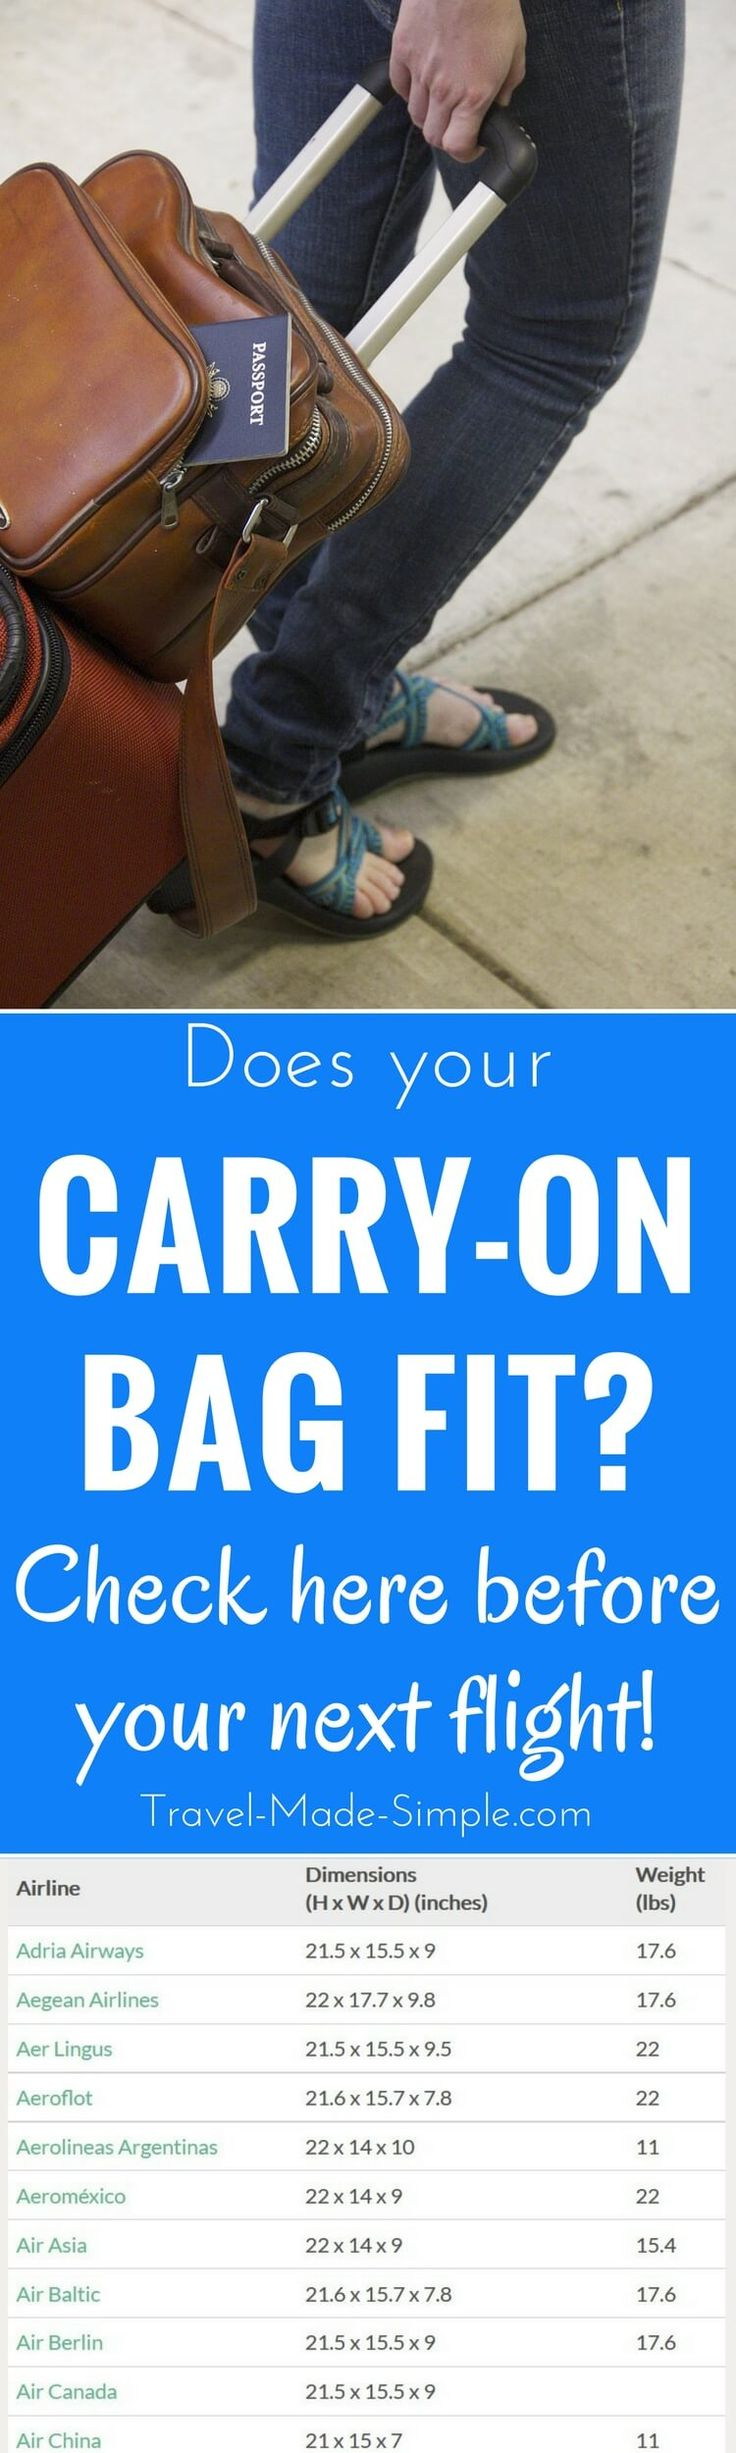 Don't show up at the airport with a bag that's too big to take as carry-on! Check the carry-on chart first. This carry-on luggage size chart provides sizes allowed by more than 150 airlines worldwide plus allowances and restrictions such as number of items and weight allowed. The chart lets you switch between imperial and metric measurements. | packing tips | packing carry-on only | flying carry-on only | carry-on size luggage | baggage allowances | hand luggage | cabin luggage